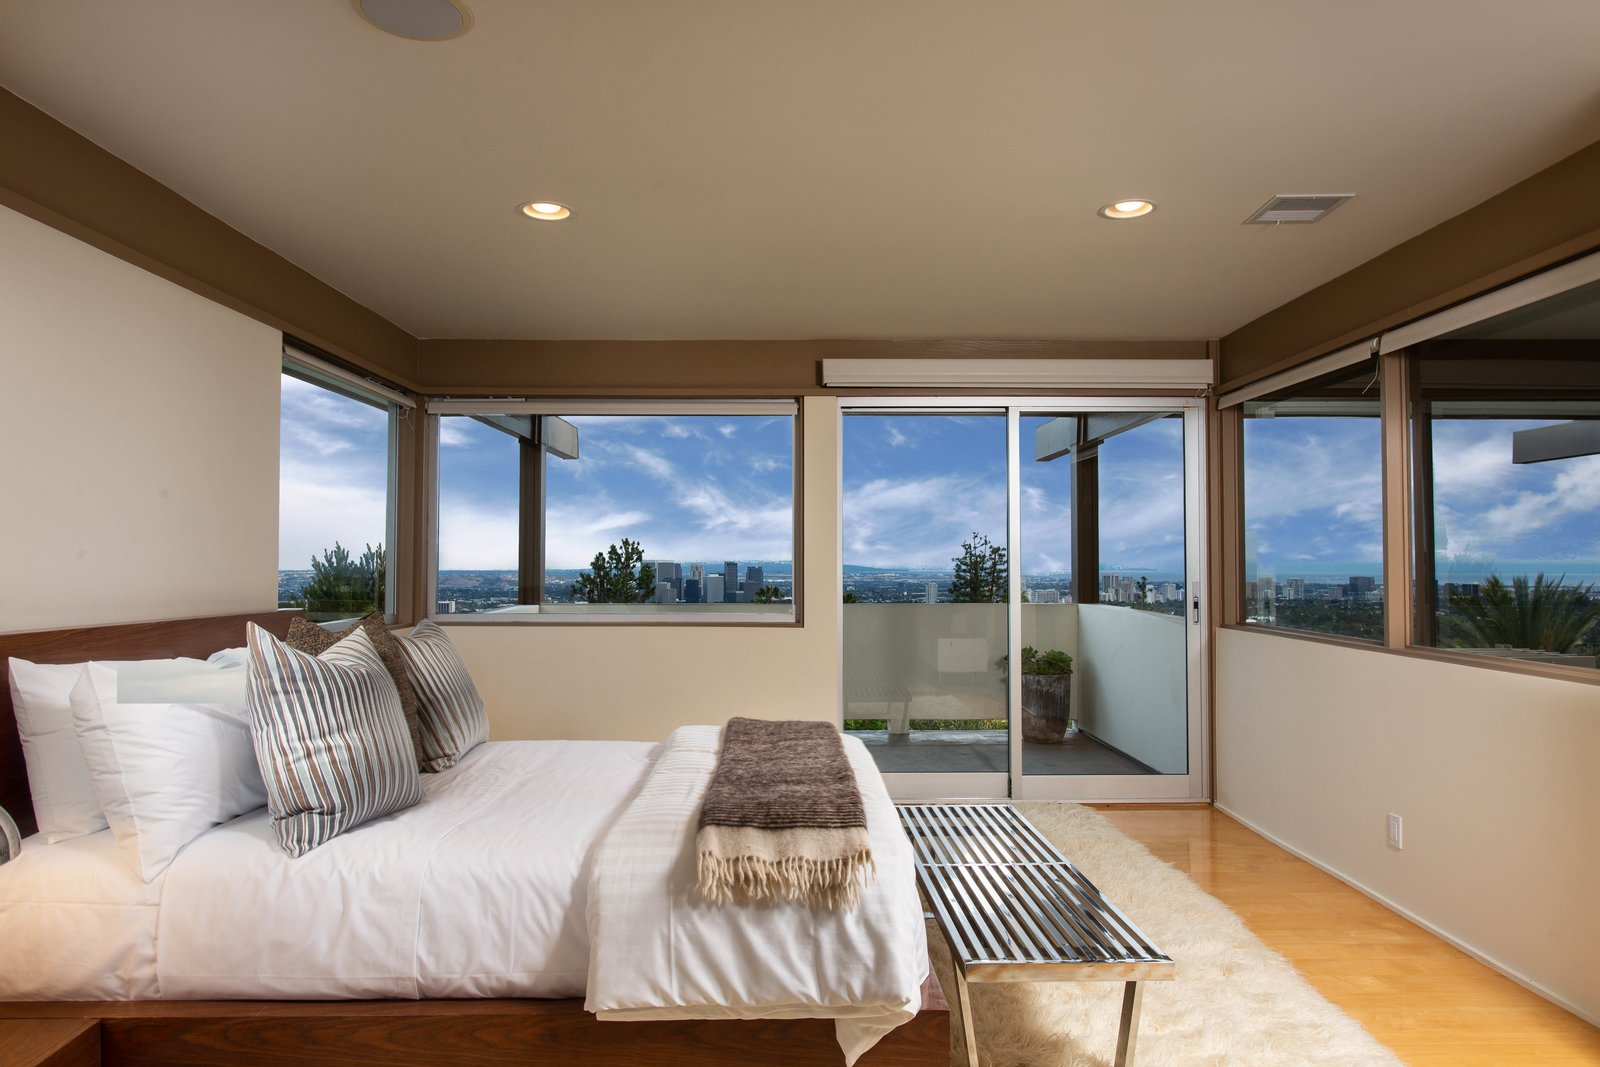 Bedroom, Bed, Recessed, Light Hardwood, Rug, and Bench The master is wrapped by panoramic views of downtown L.A. and the surrounding sea.    Best Bedroom Recessed Light Hardwood Bench Photos from A Widely Published Midcentury in L.A. Hits the Market at $6.9M